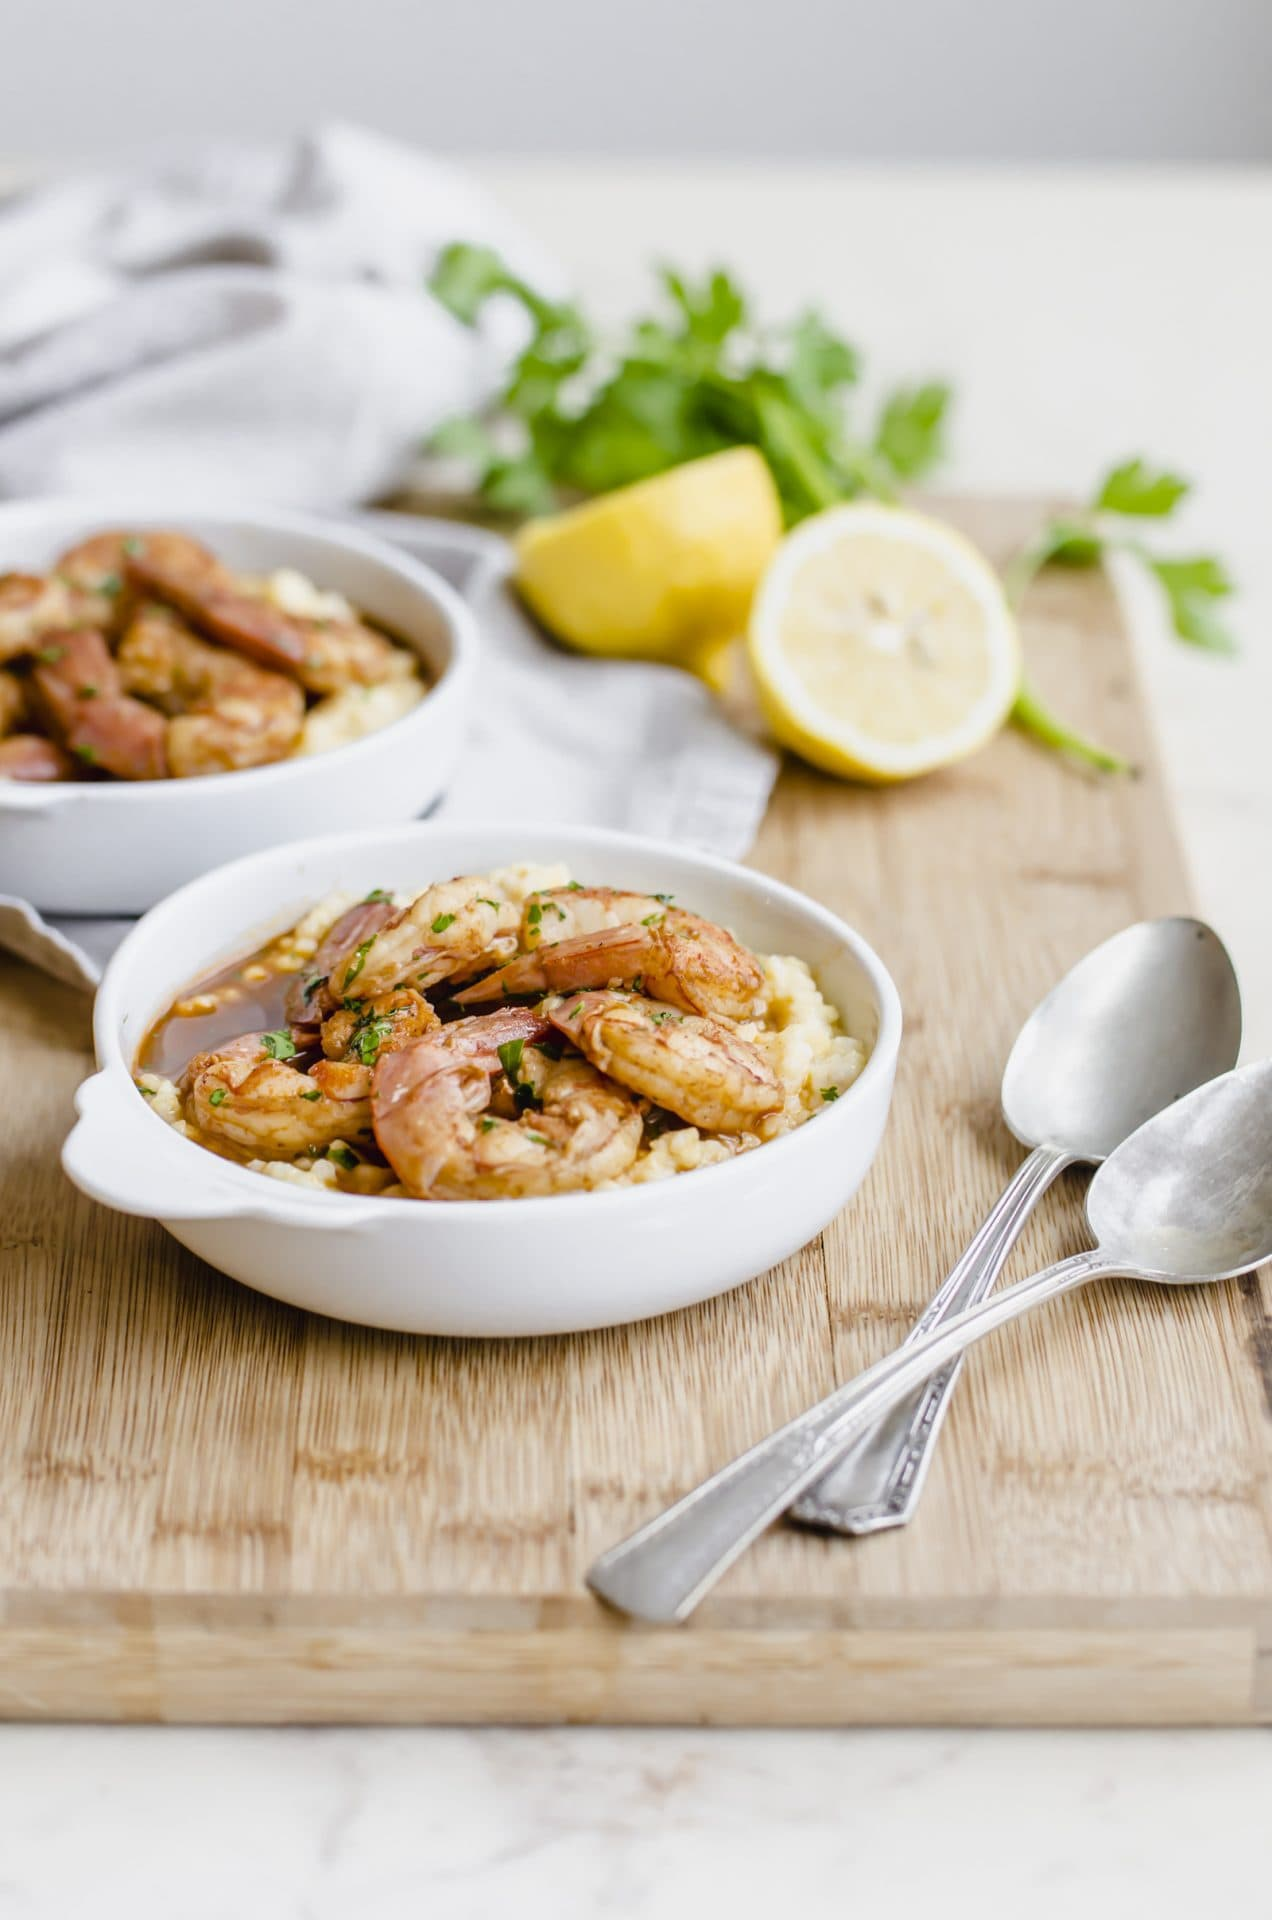 An overhead shot of two bowls of barbecue shrimp and grits on a cutting board with a lemon on the side.